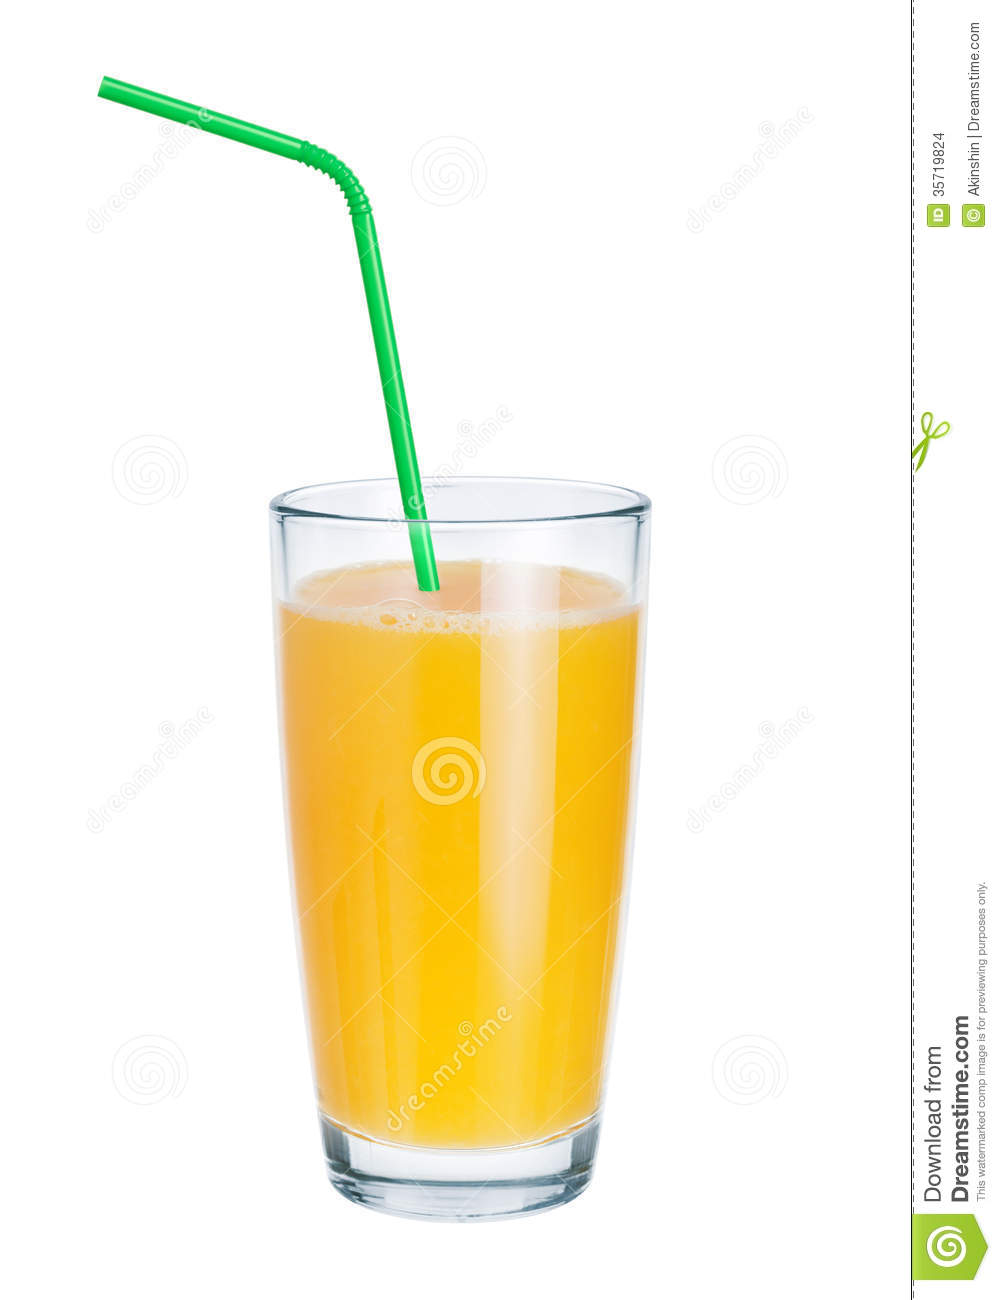 Straw clipart juice Clipart Of Clipart glass%20of%20juice%20clipart Juice